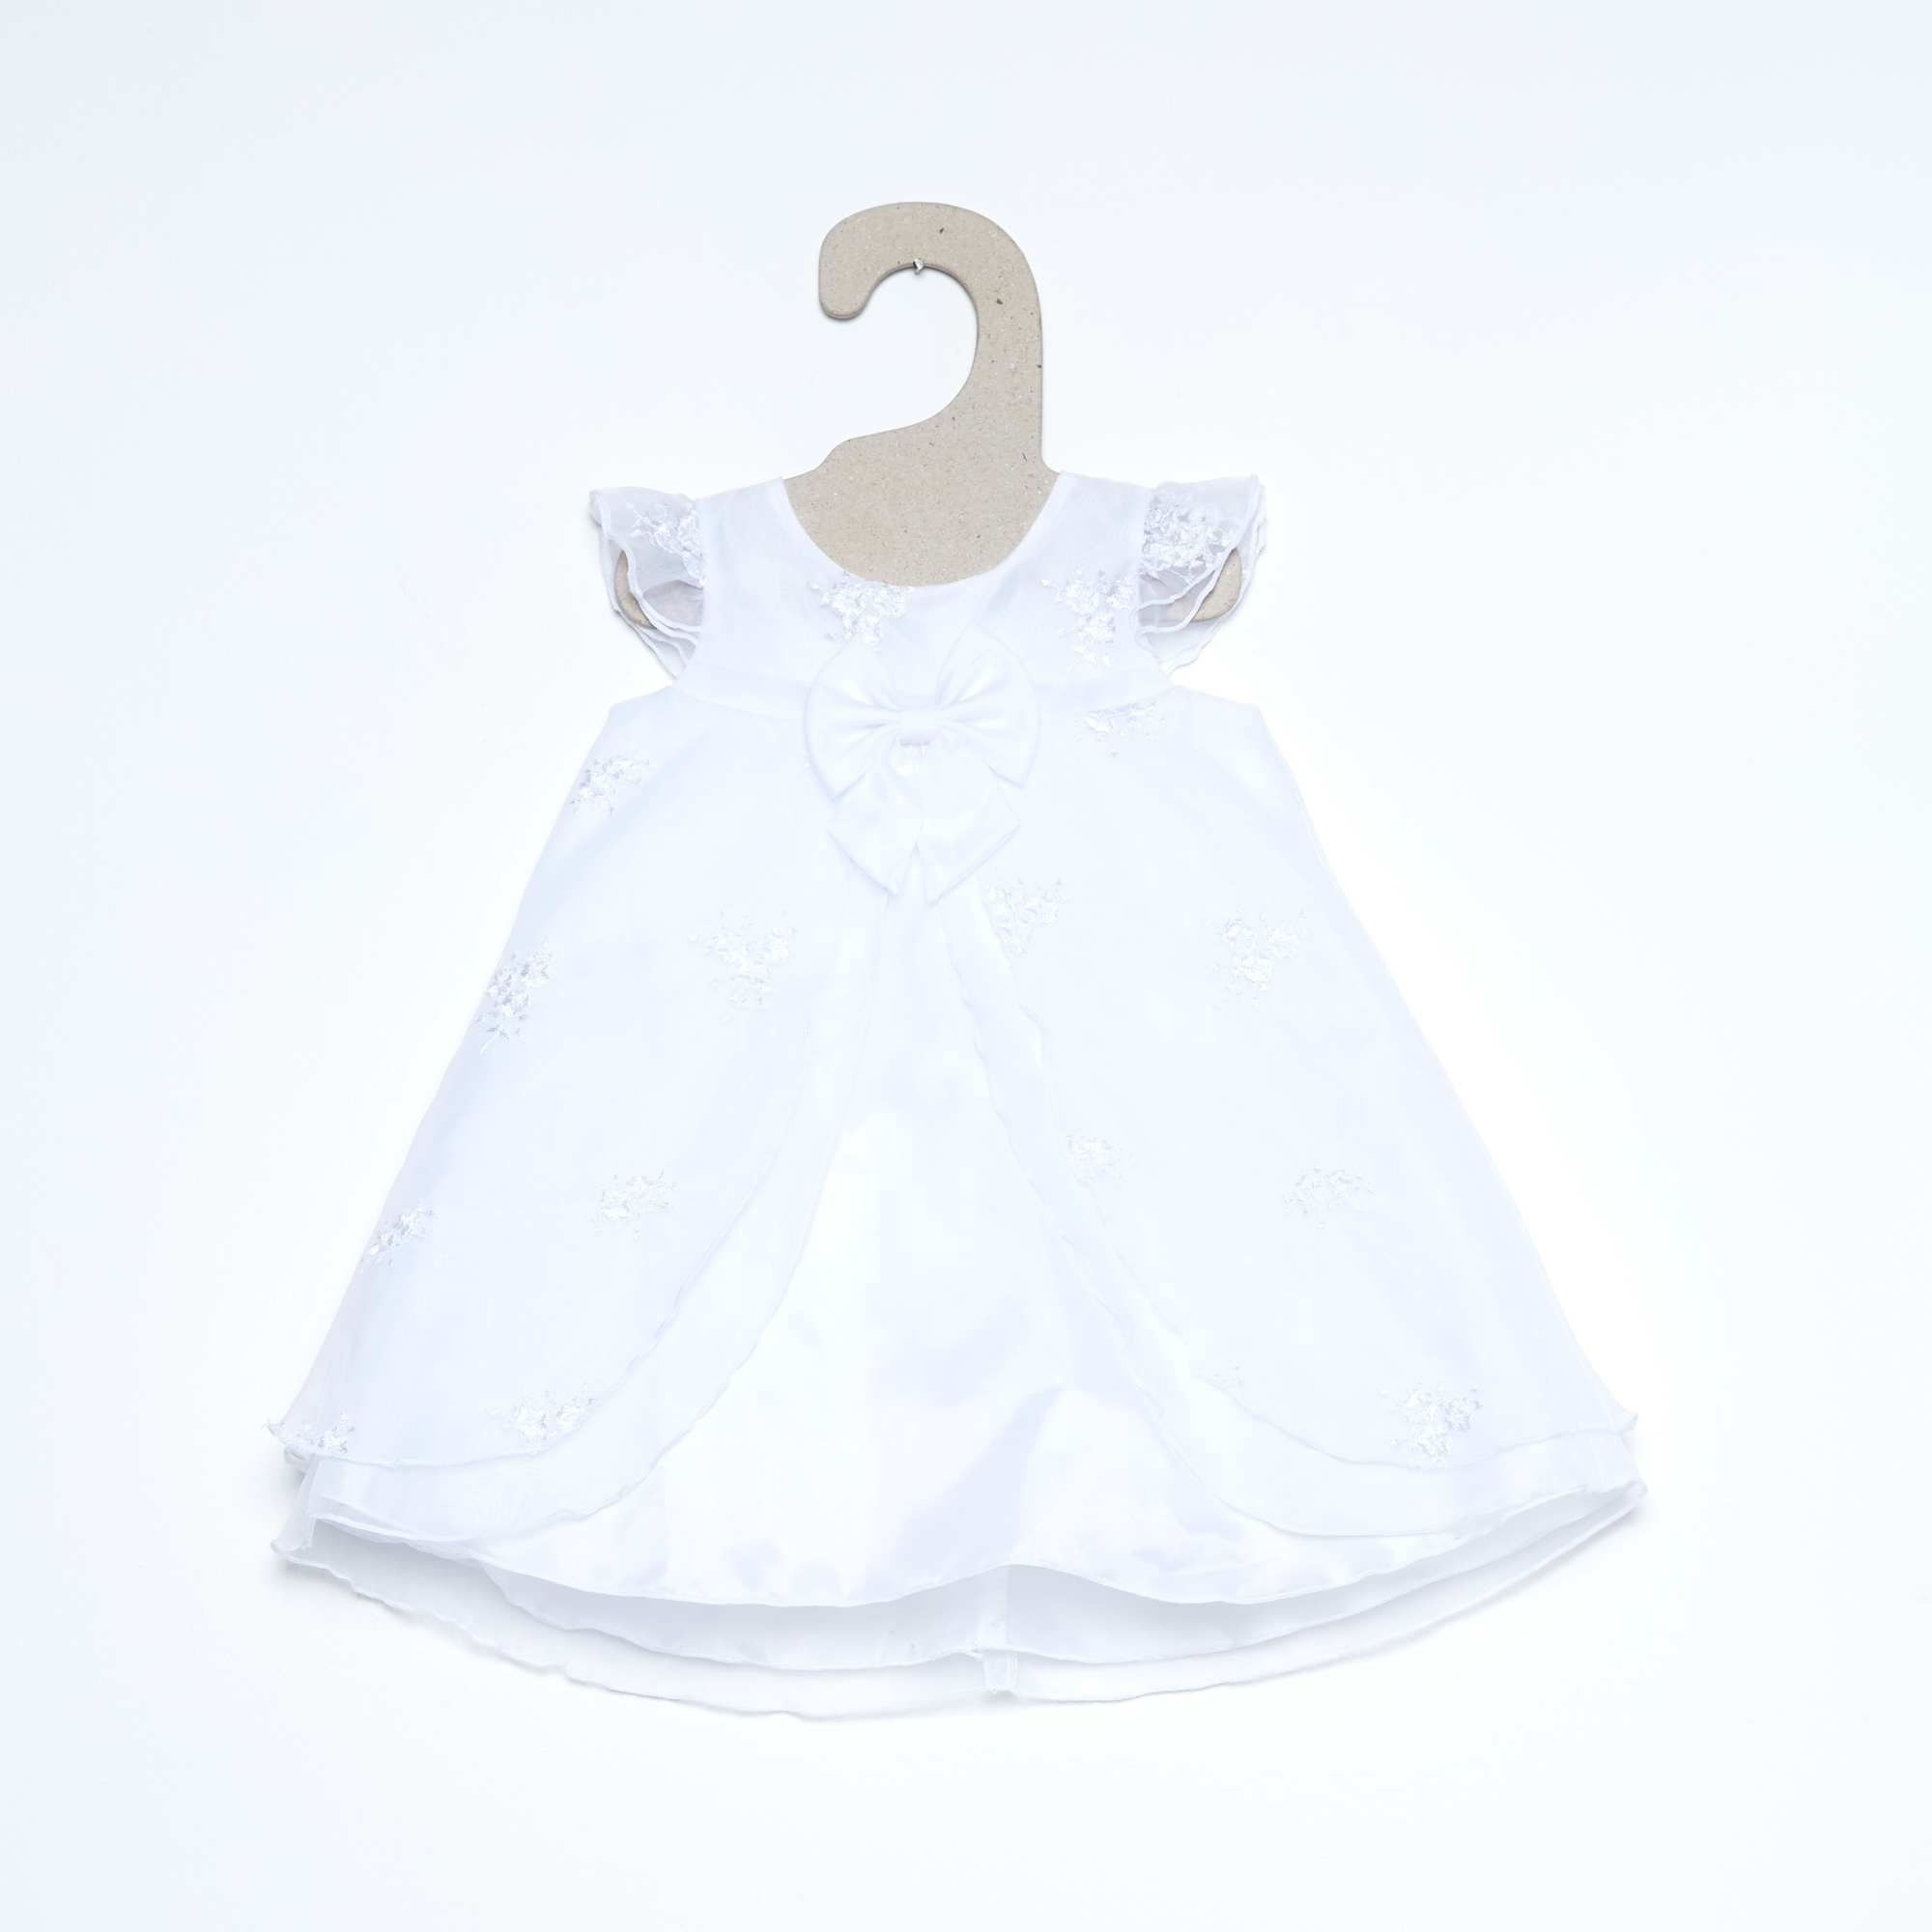 6a7f1d39b69 robe de ceremonie fille kiabi